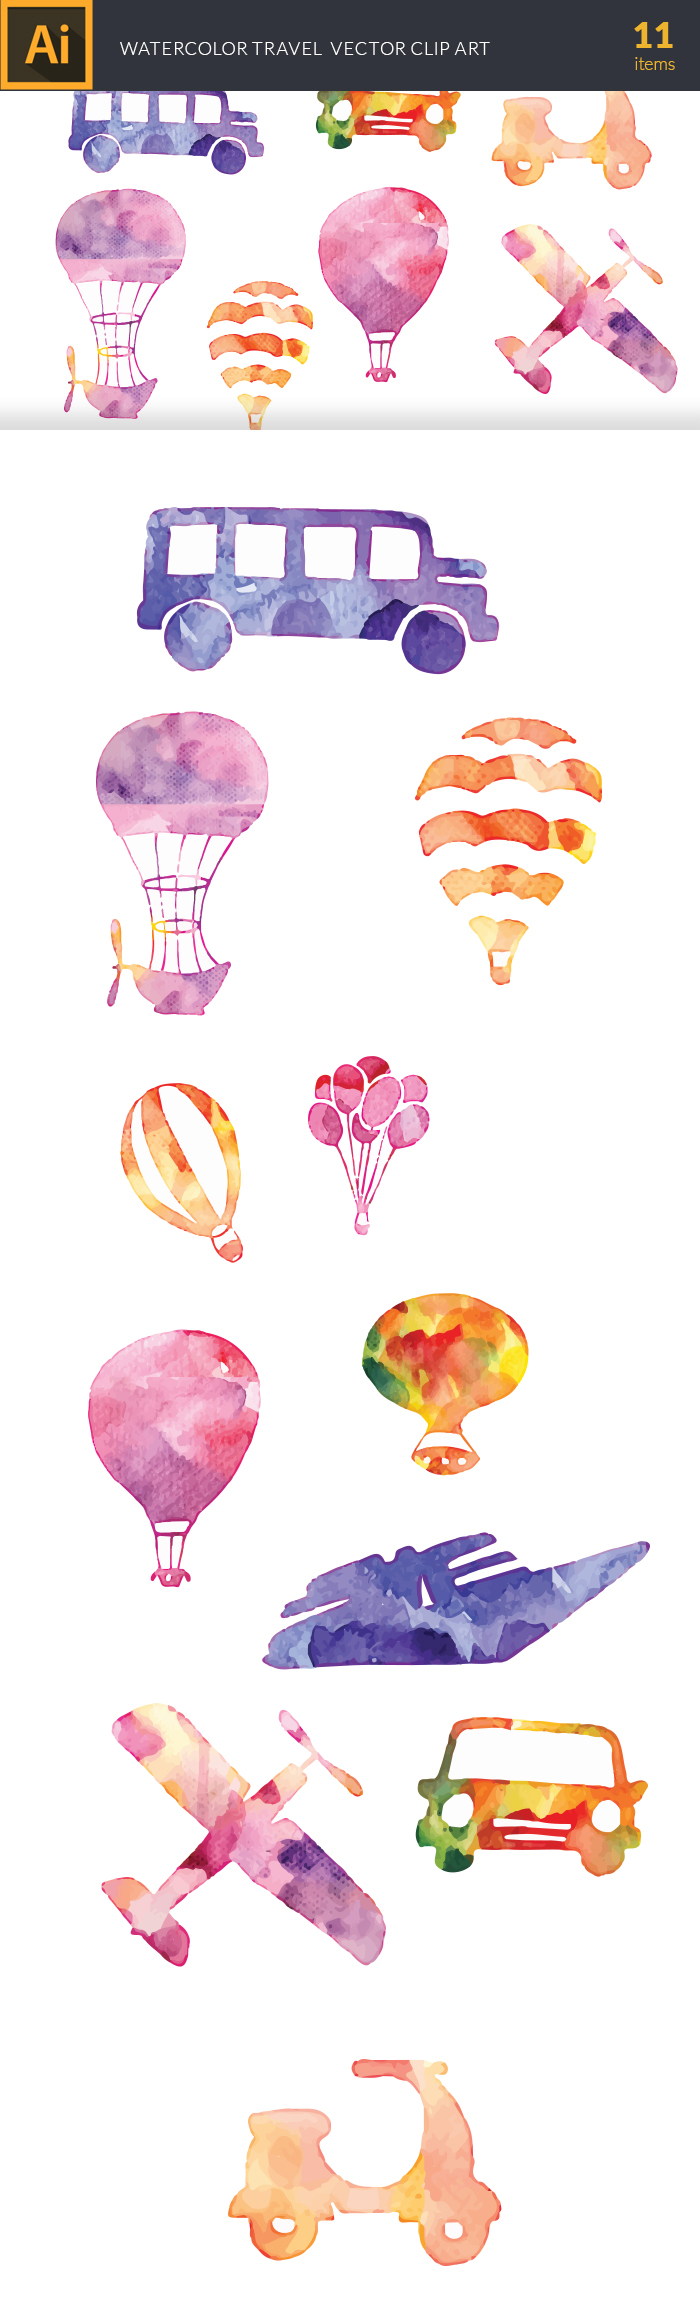 Free Watercolor Travel Vector Set watercolor silhouette travel large